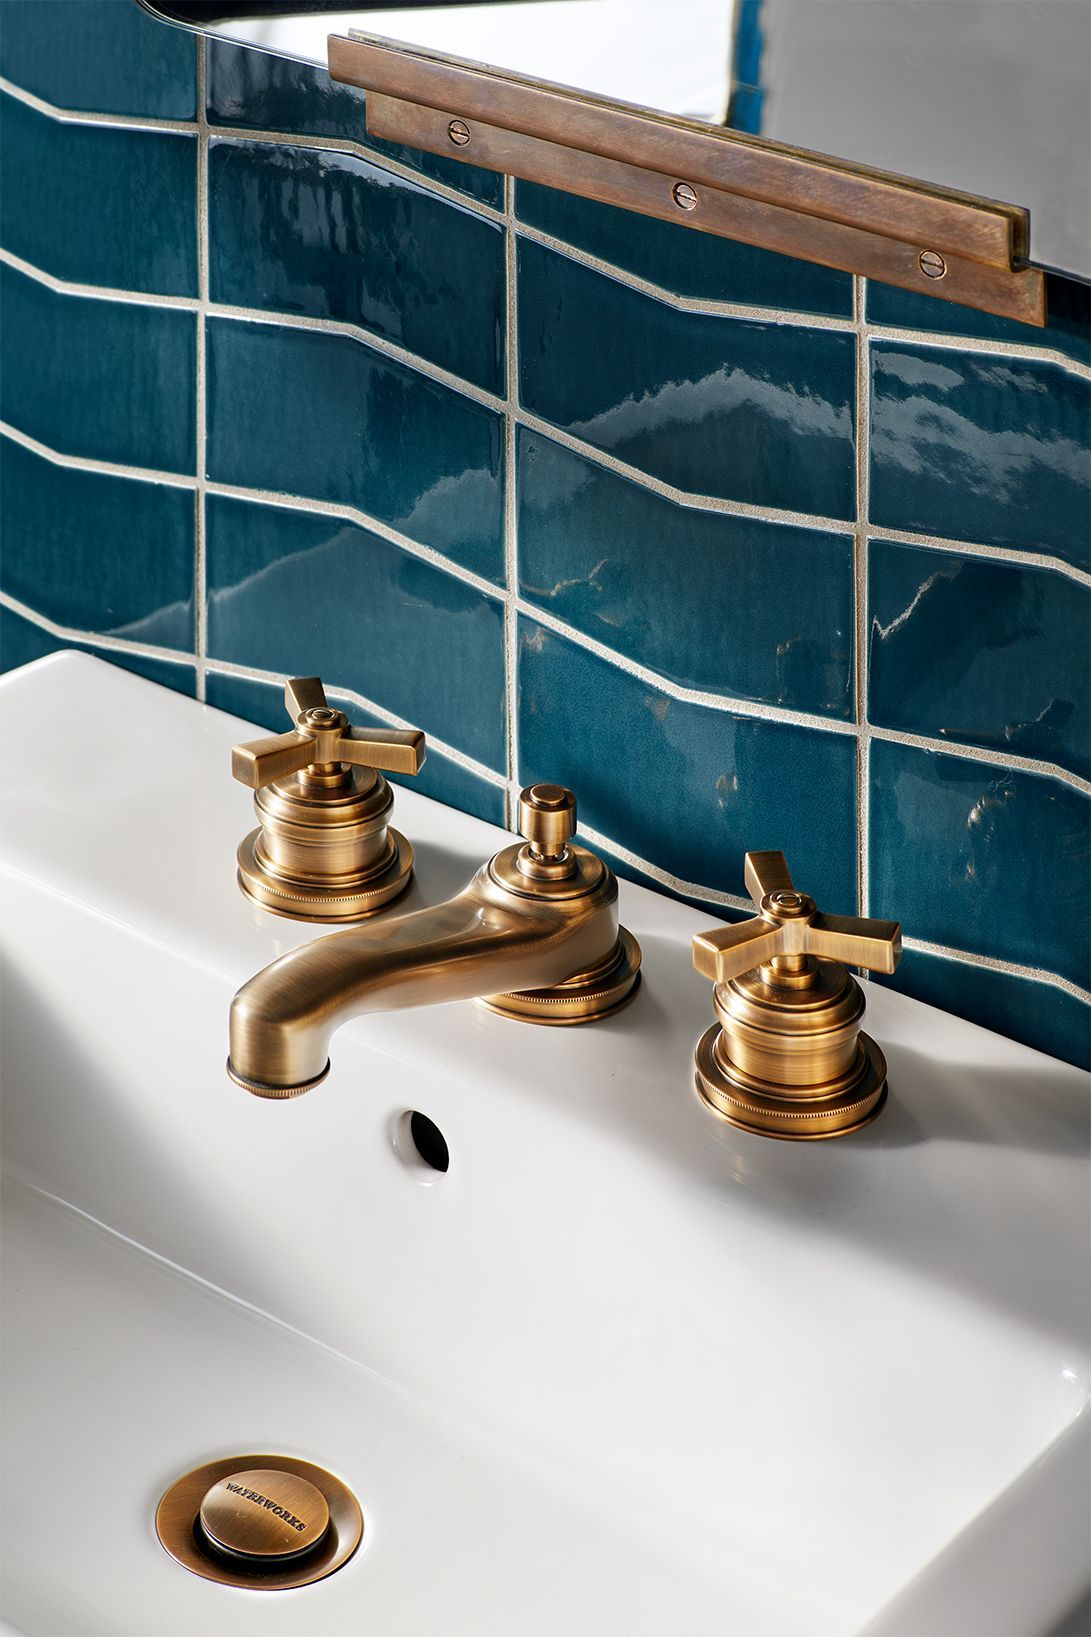 Discover Aero Low Profile Three Hole Deck Mounted Lavatory Faucet